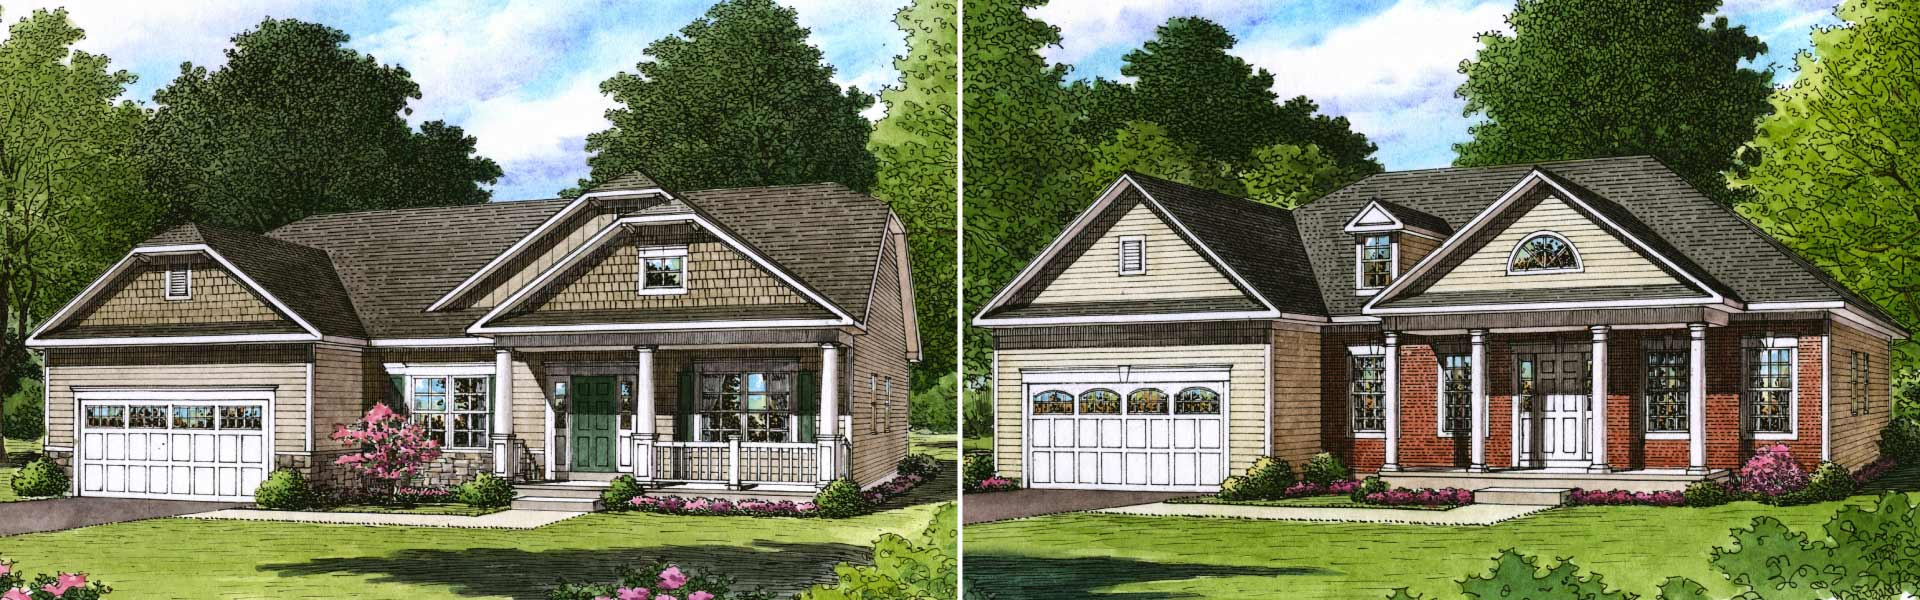 NANTUCKET Collection - CCE - Amedore Homes on bristol home plans, newport home plans, phoenix home plans, ashland home plans, open floor small home plans, texas home plans, chatham home plans, hampton home plans, english countryside home plans, miami home plans, savannah home plans, washington home plans, wisconsin home plans, idaho home plans, hudson home plans, martha's vineyard home plans, loggia home plans, gardner home plans, connecticut home plans, franklin home plans,